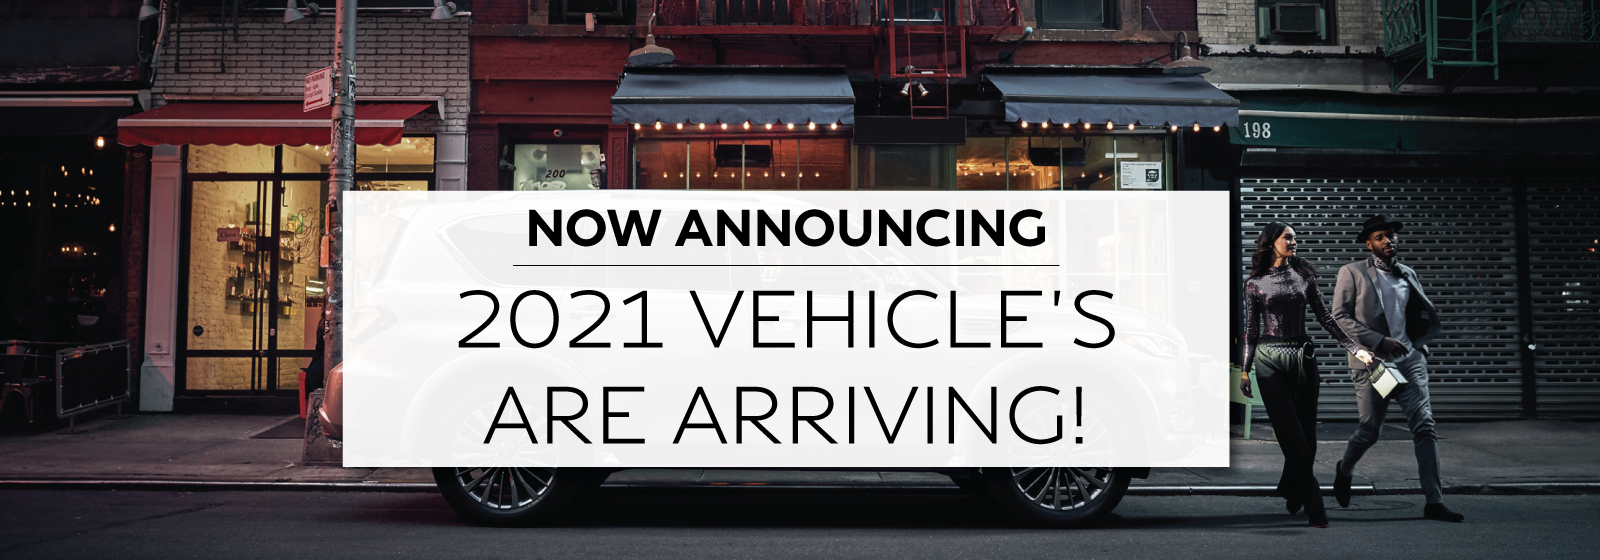 Now Announcing 2021 Vehicle's Are Arriving!